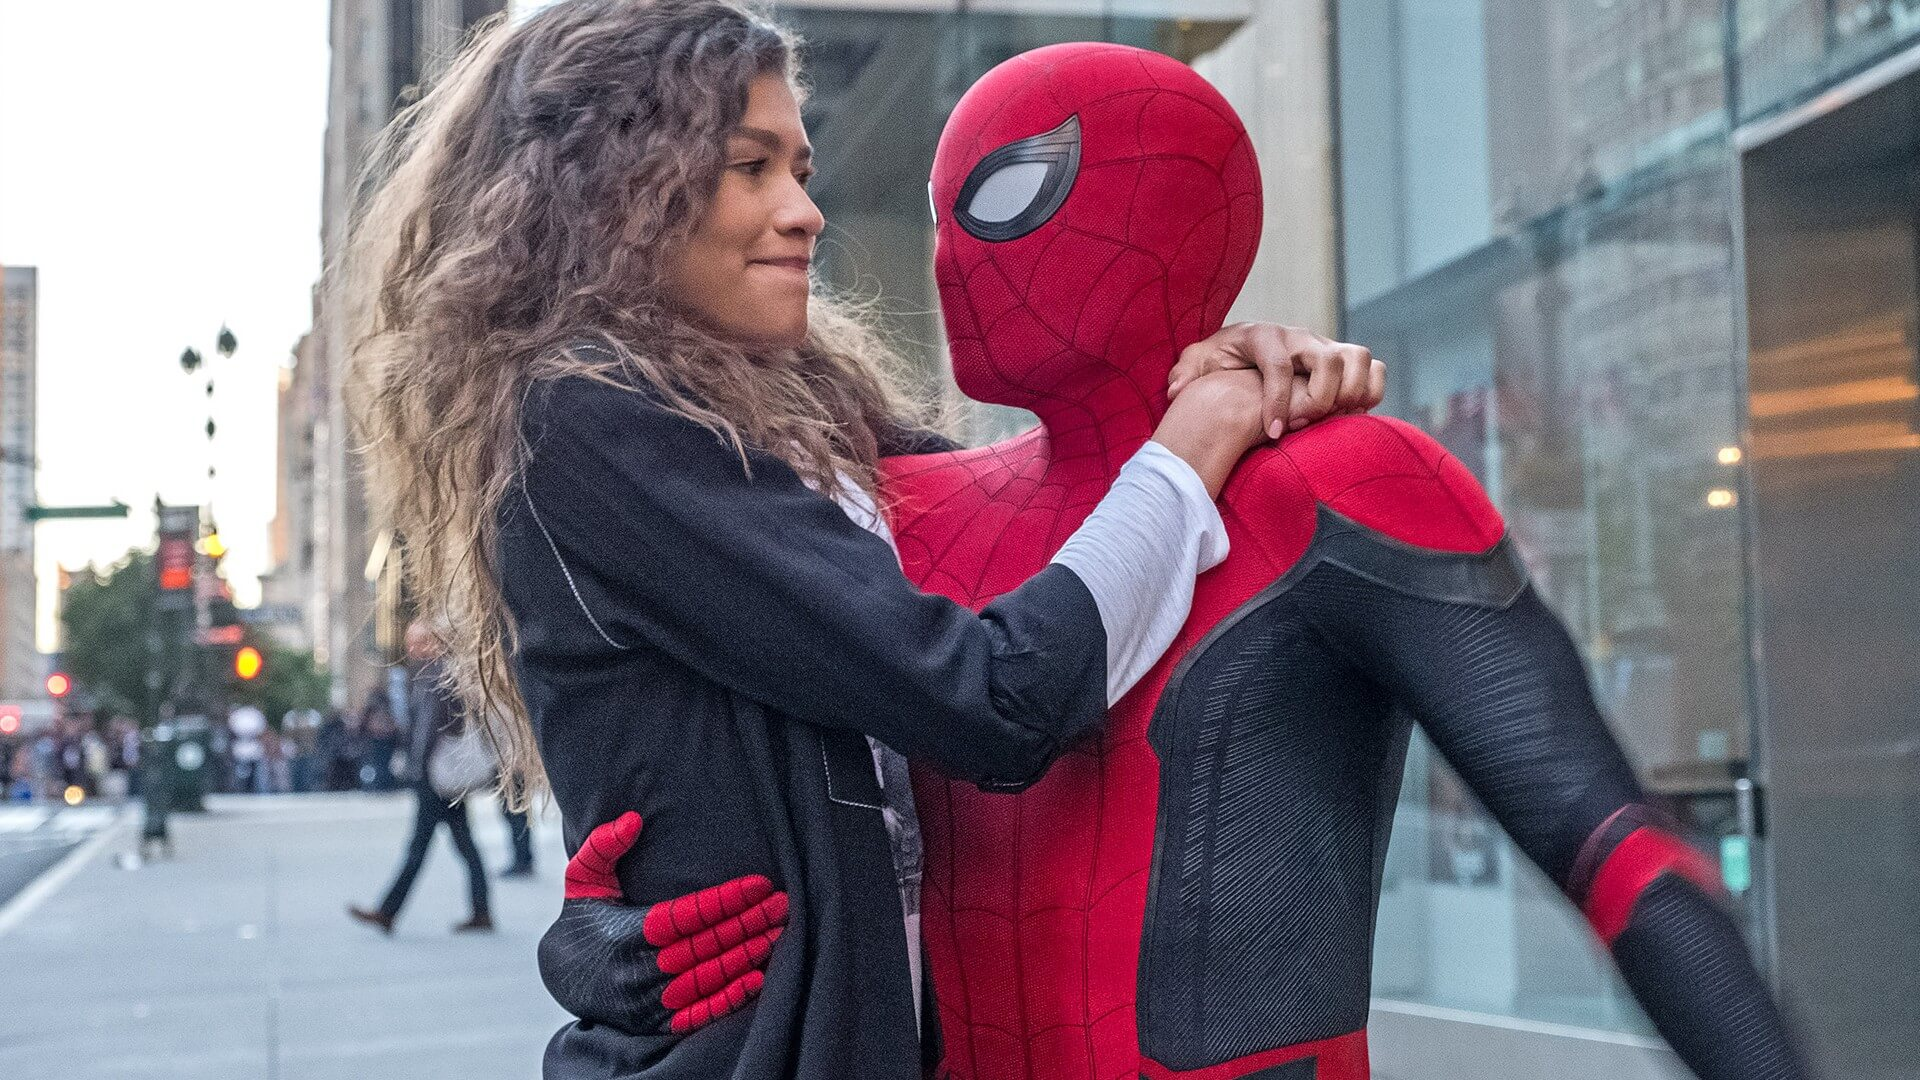 Spider-Man Films Will Soon Be On Disney+ Thanks to a Multi-Year Deal